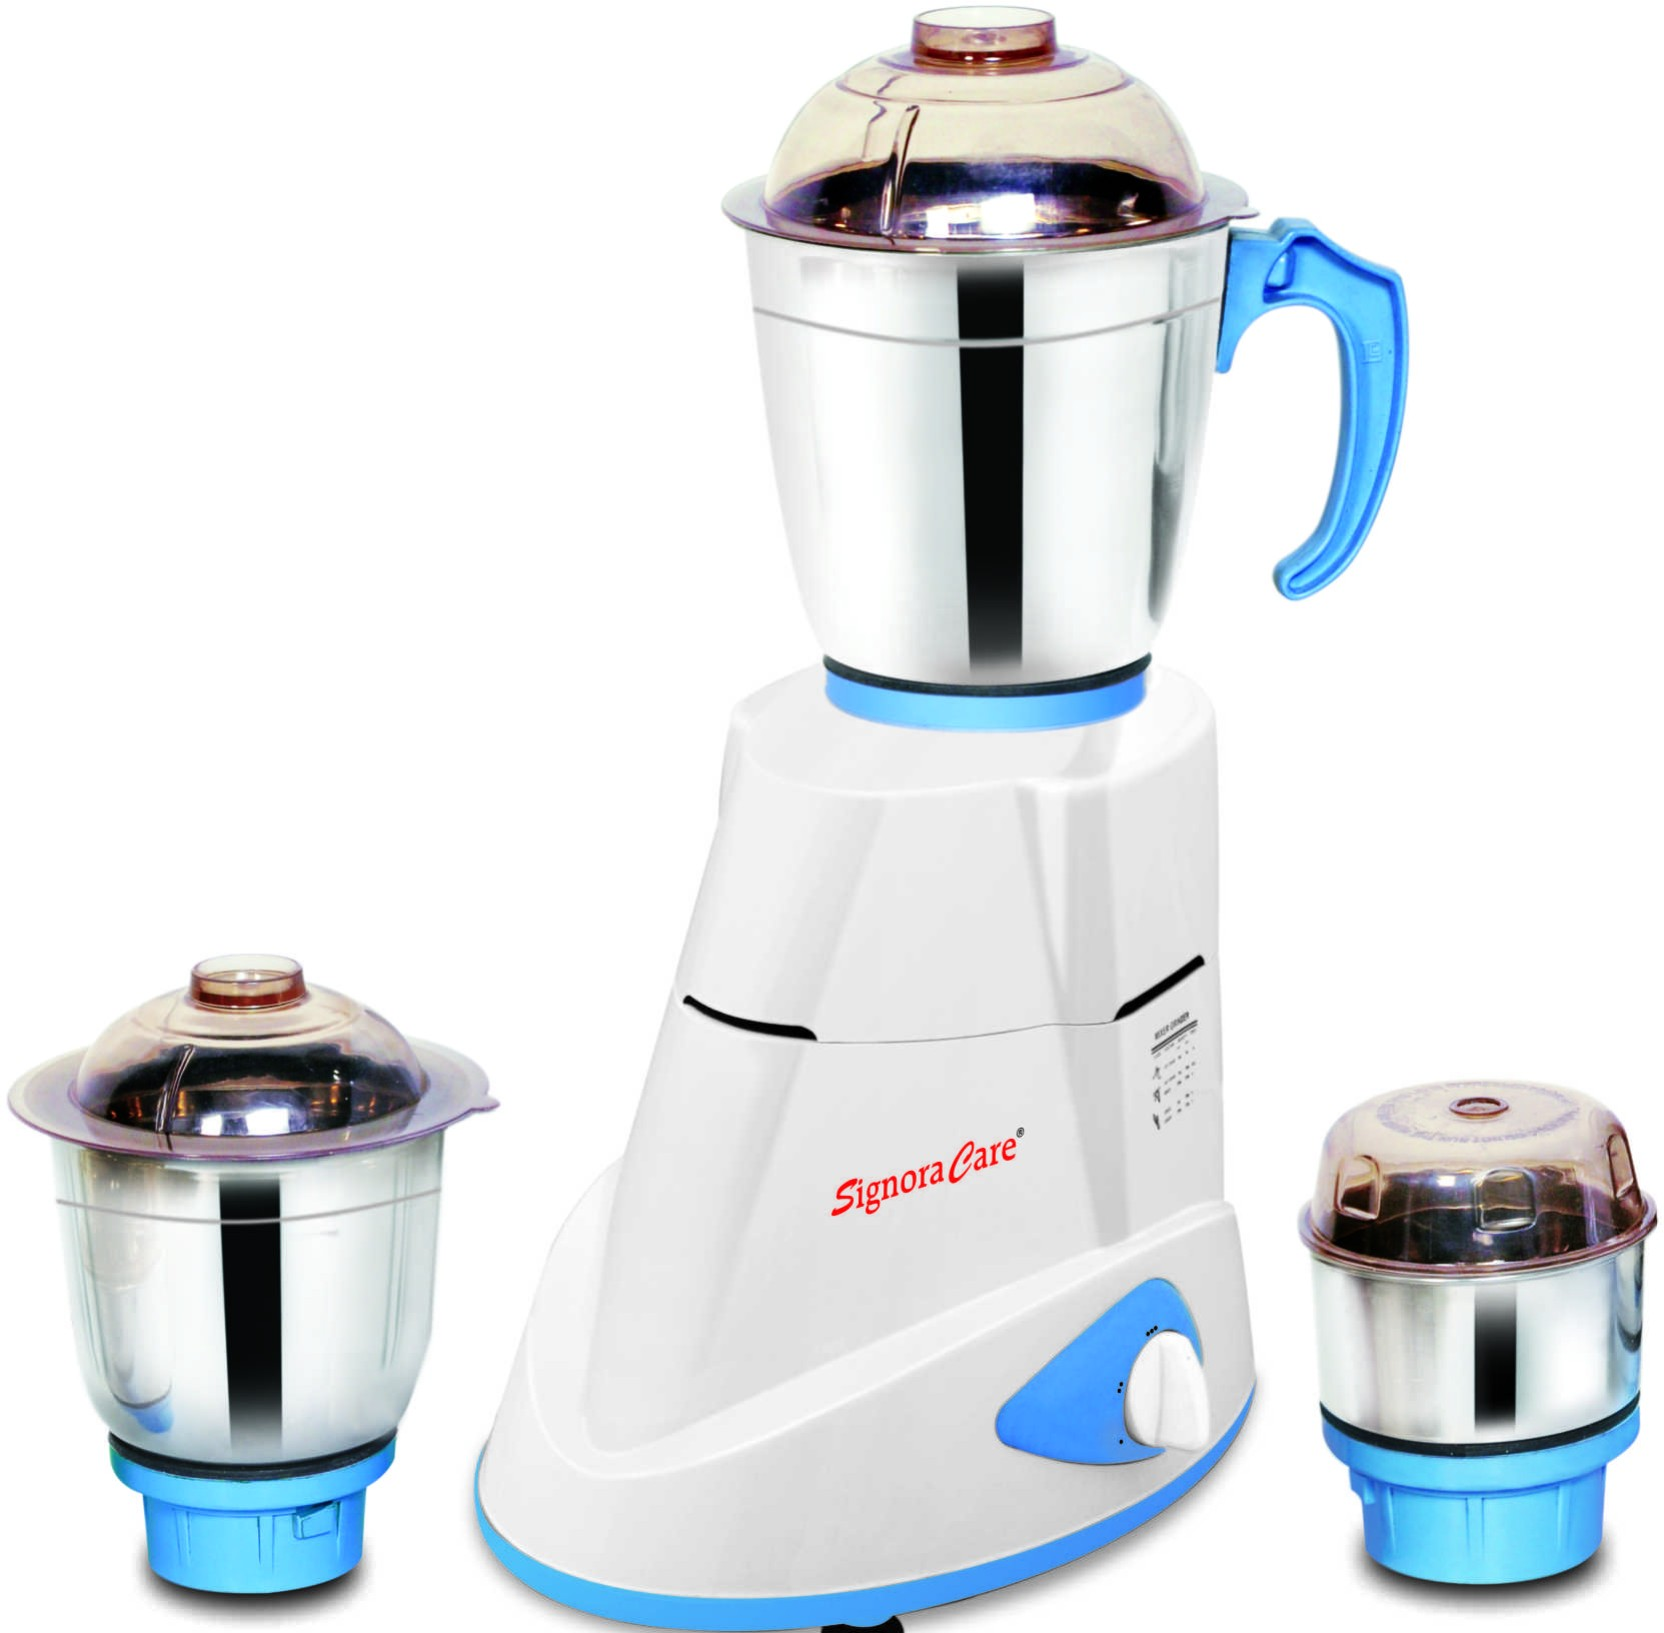 Signoracare Maxima 750 W Mixer Grinder Price In India Buy Signora Pro Max Add To Cart